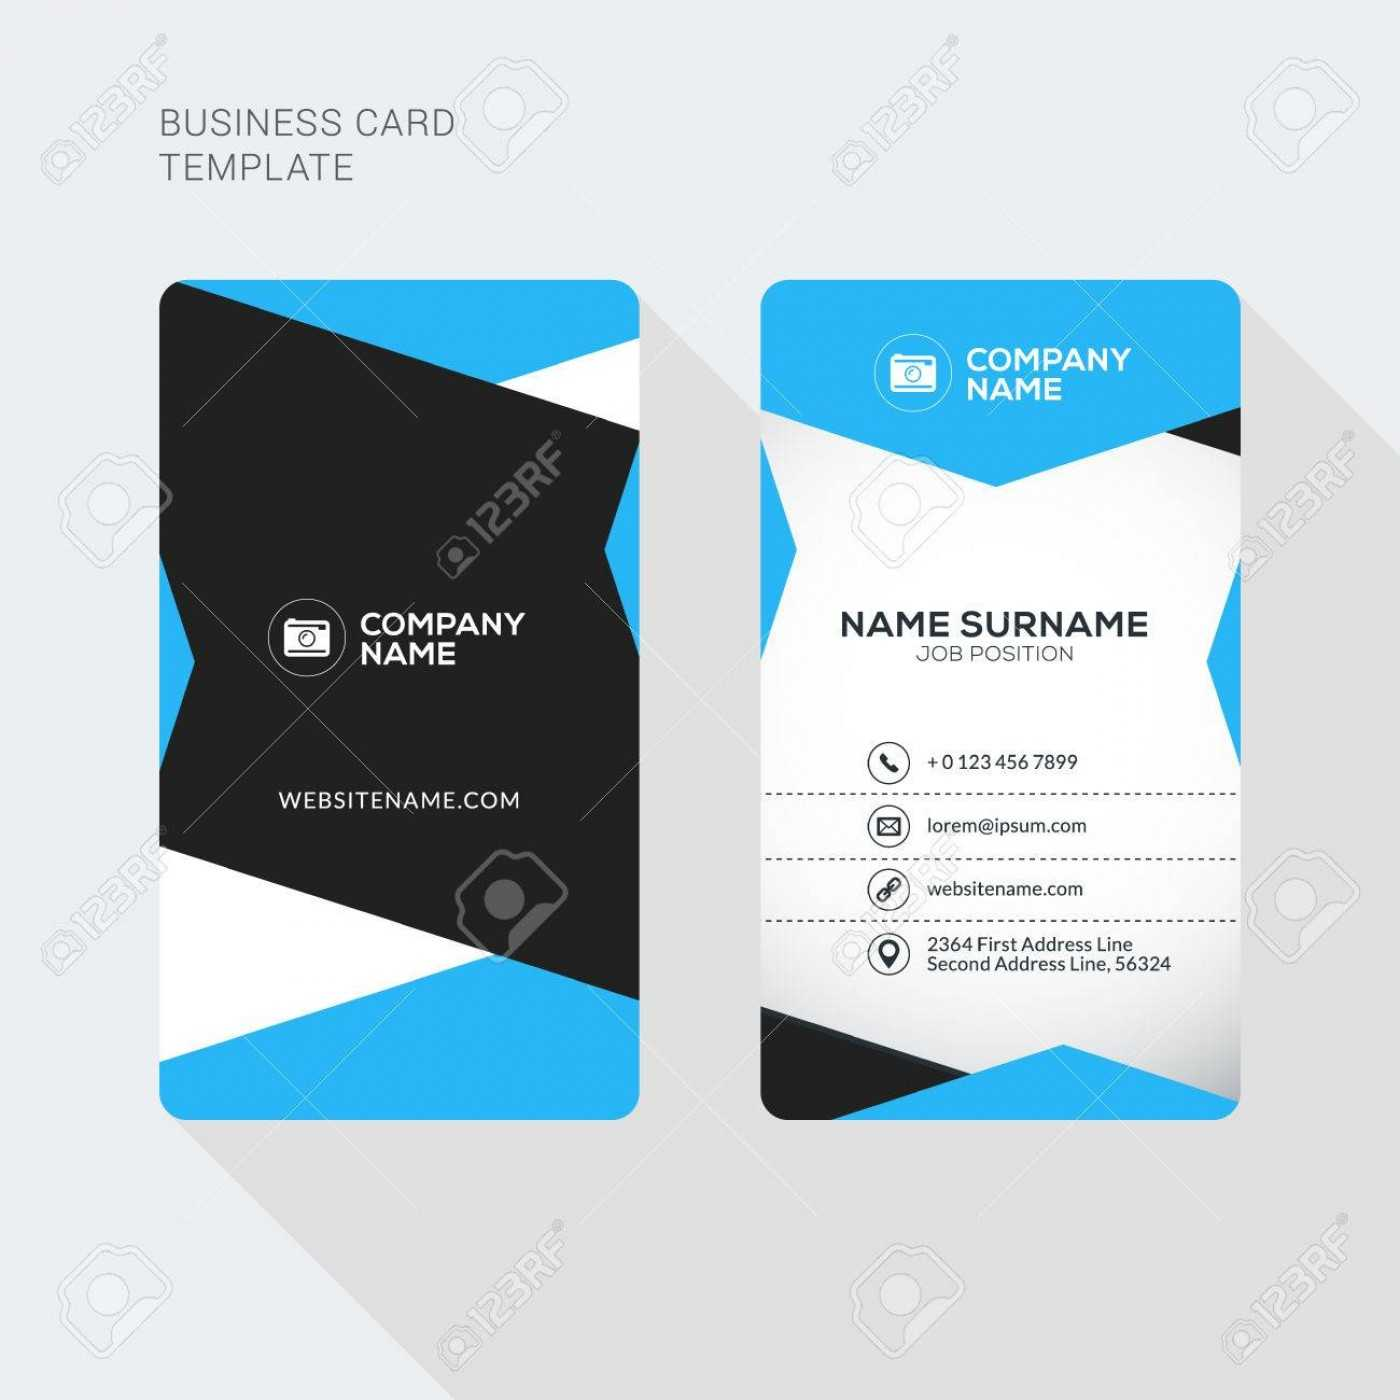 015 Template Ideas Double Sided Business Card Illustrator Within Double Sided Business Card Template Illustrator